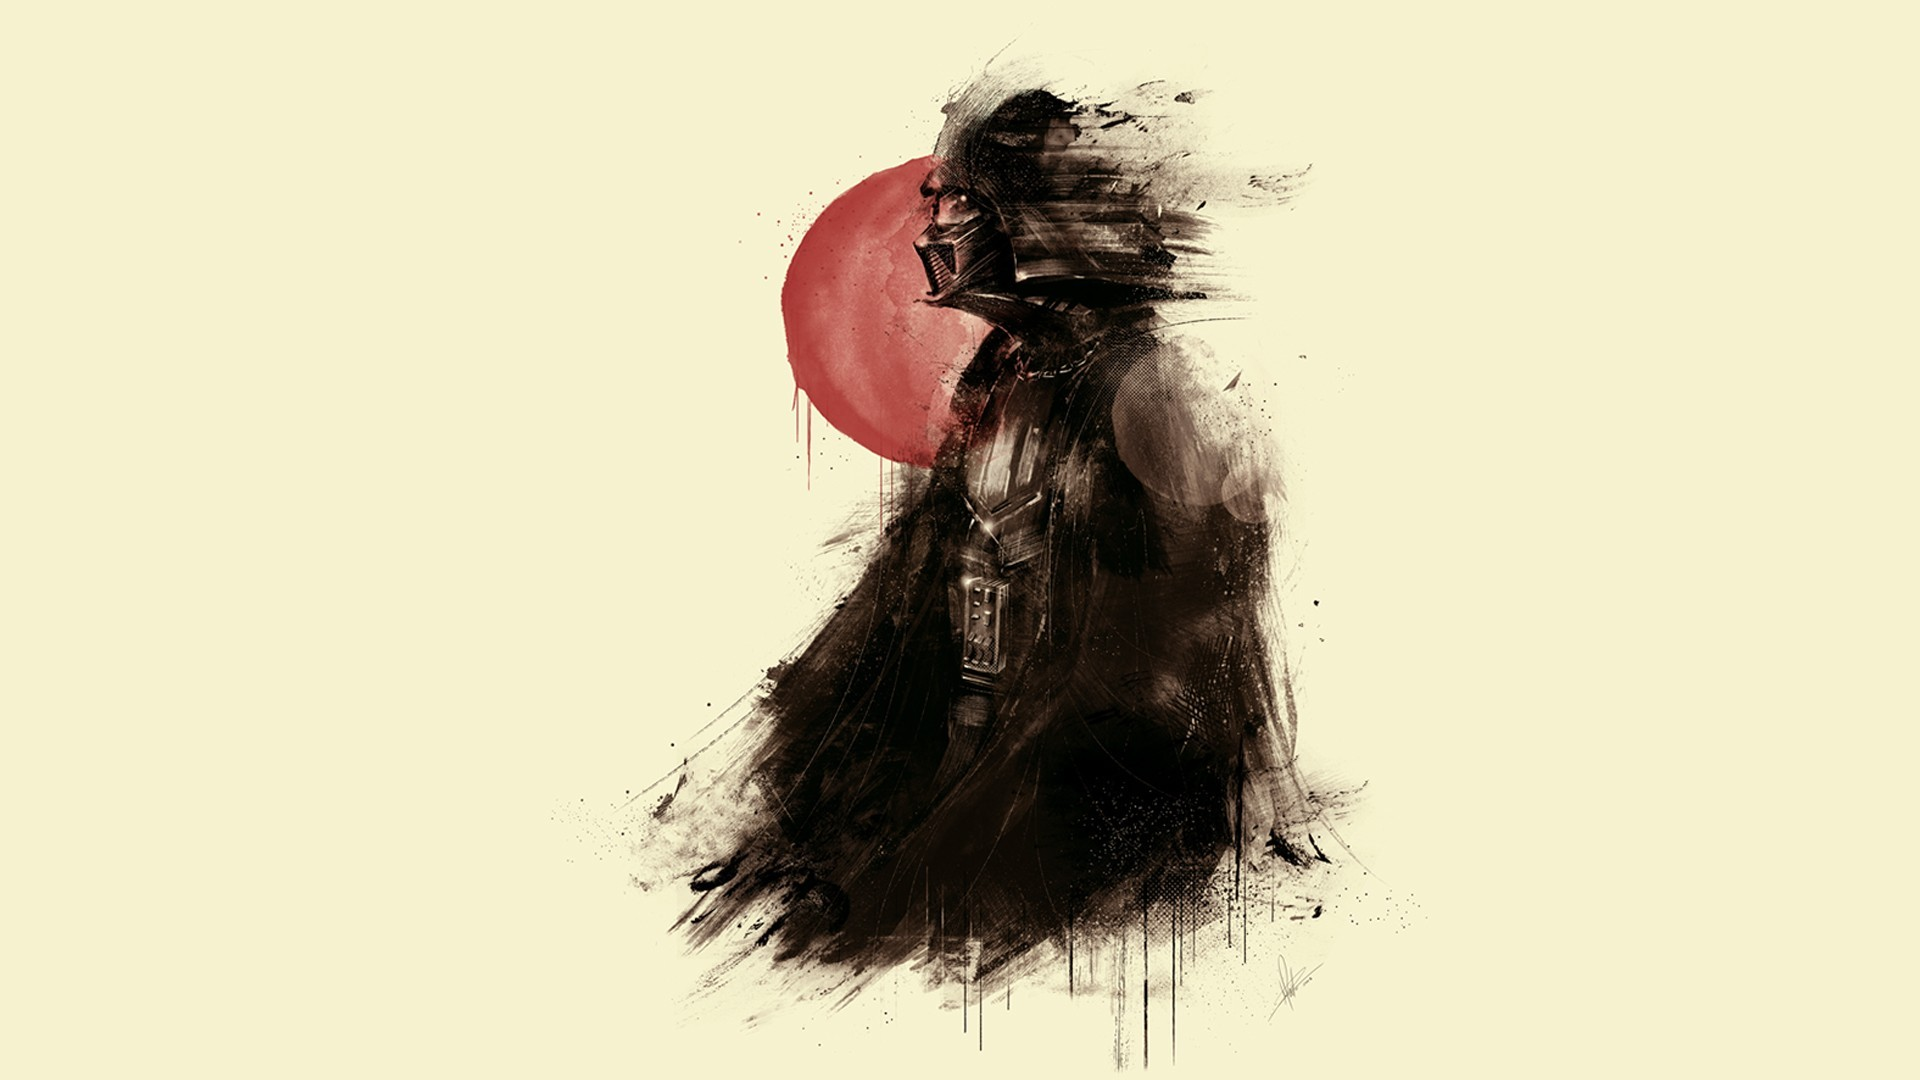 General 1920x1080 red sun Darth Vader red artwork Sith simple background minimalism fantasy art fan art